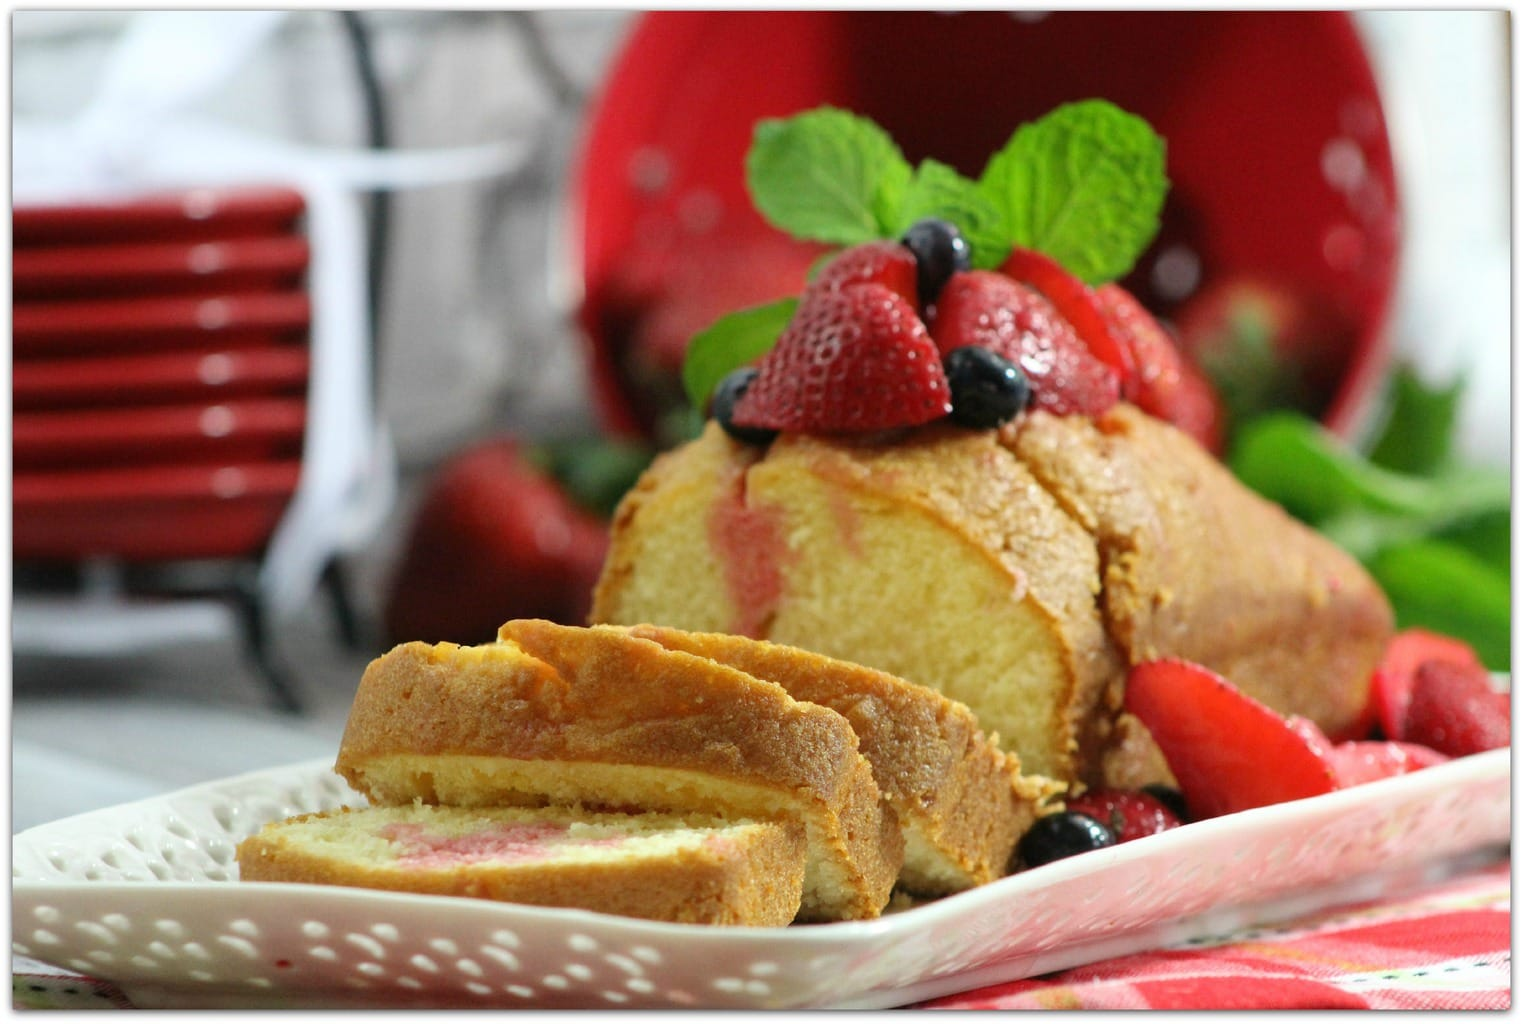 Pound cake with berries and mint on white plate.